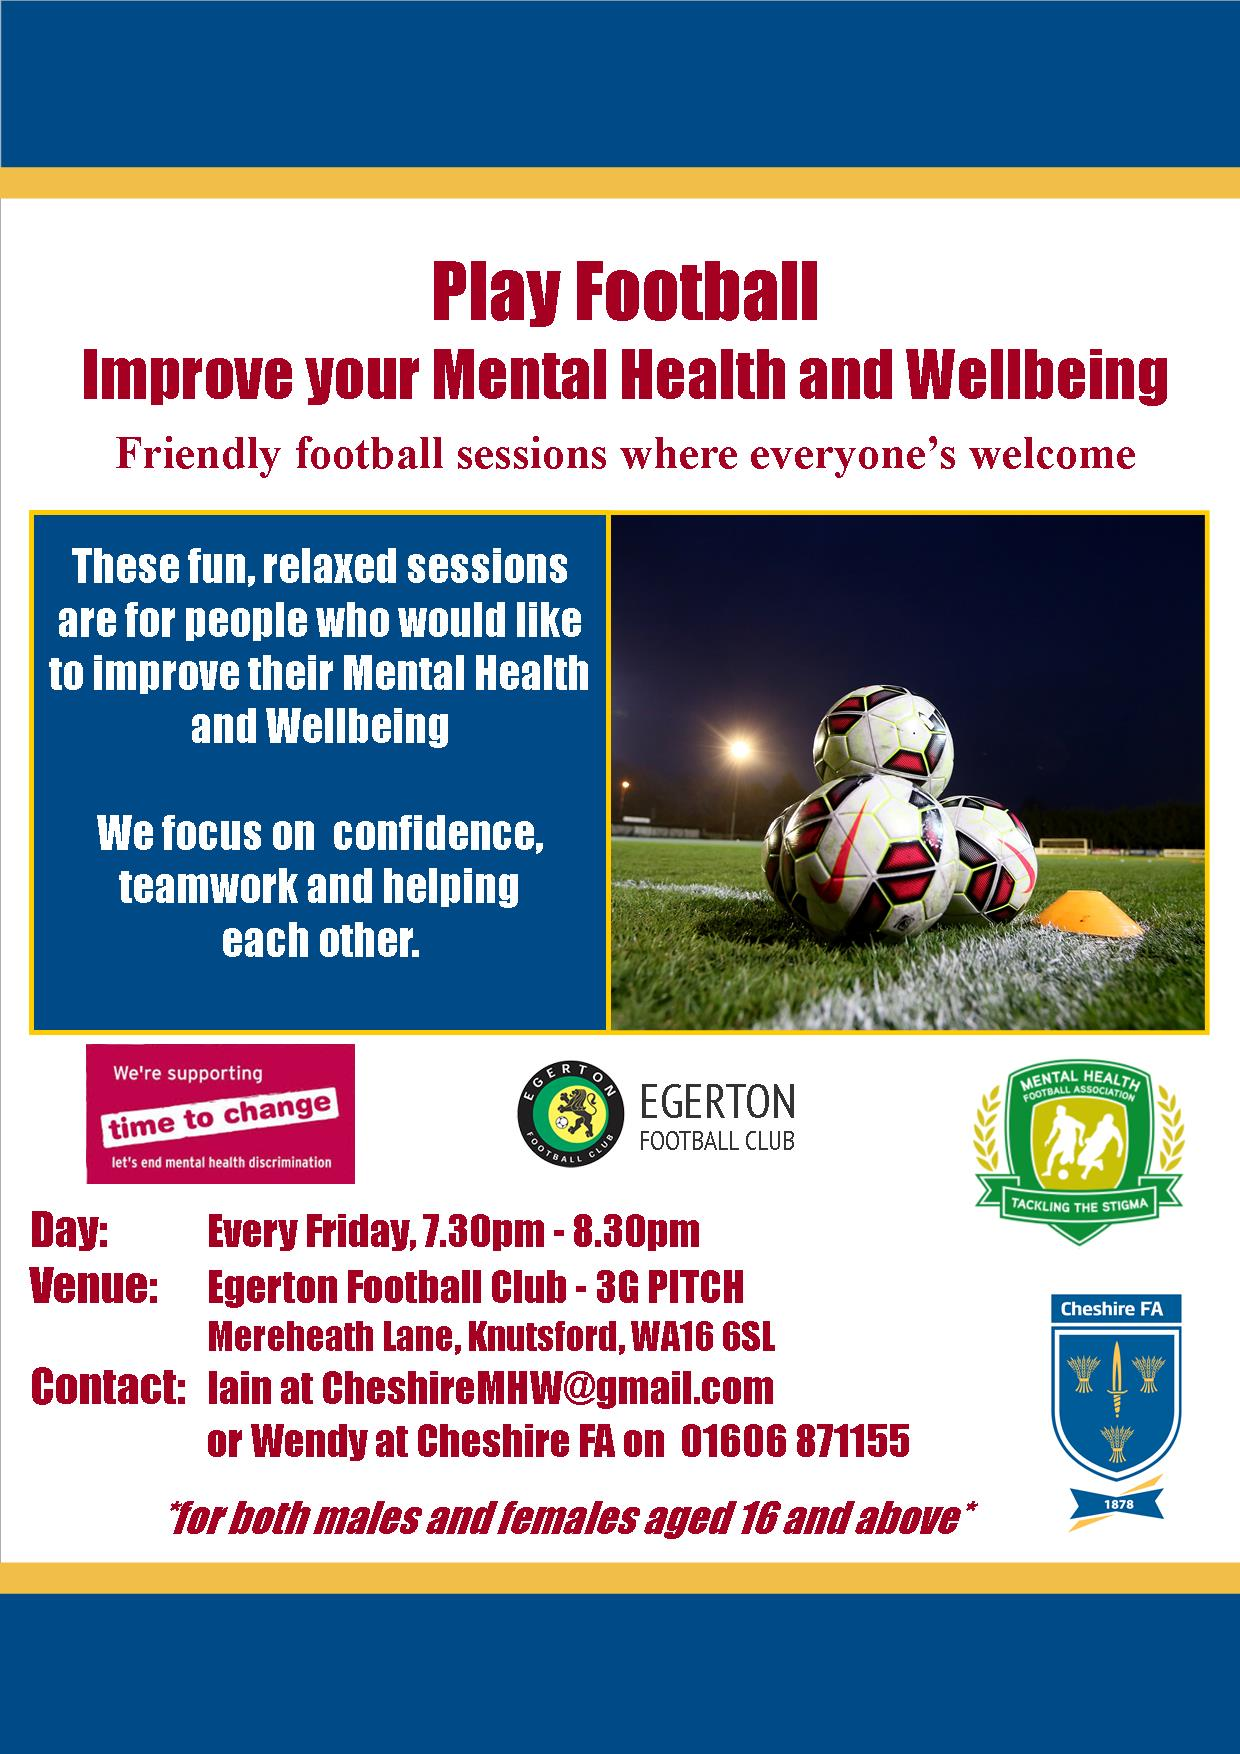 Fun, friendly football sessions every Friday